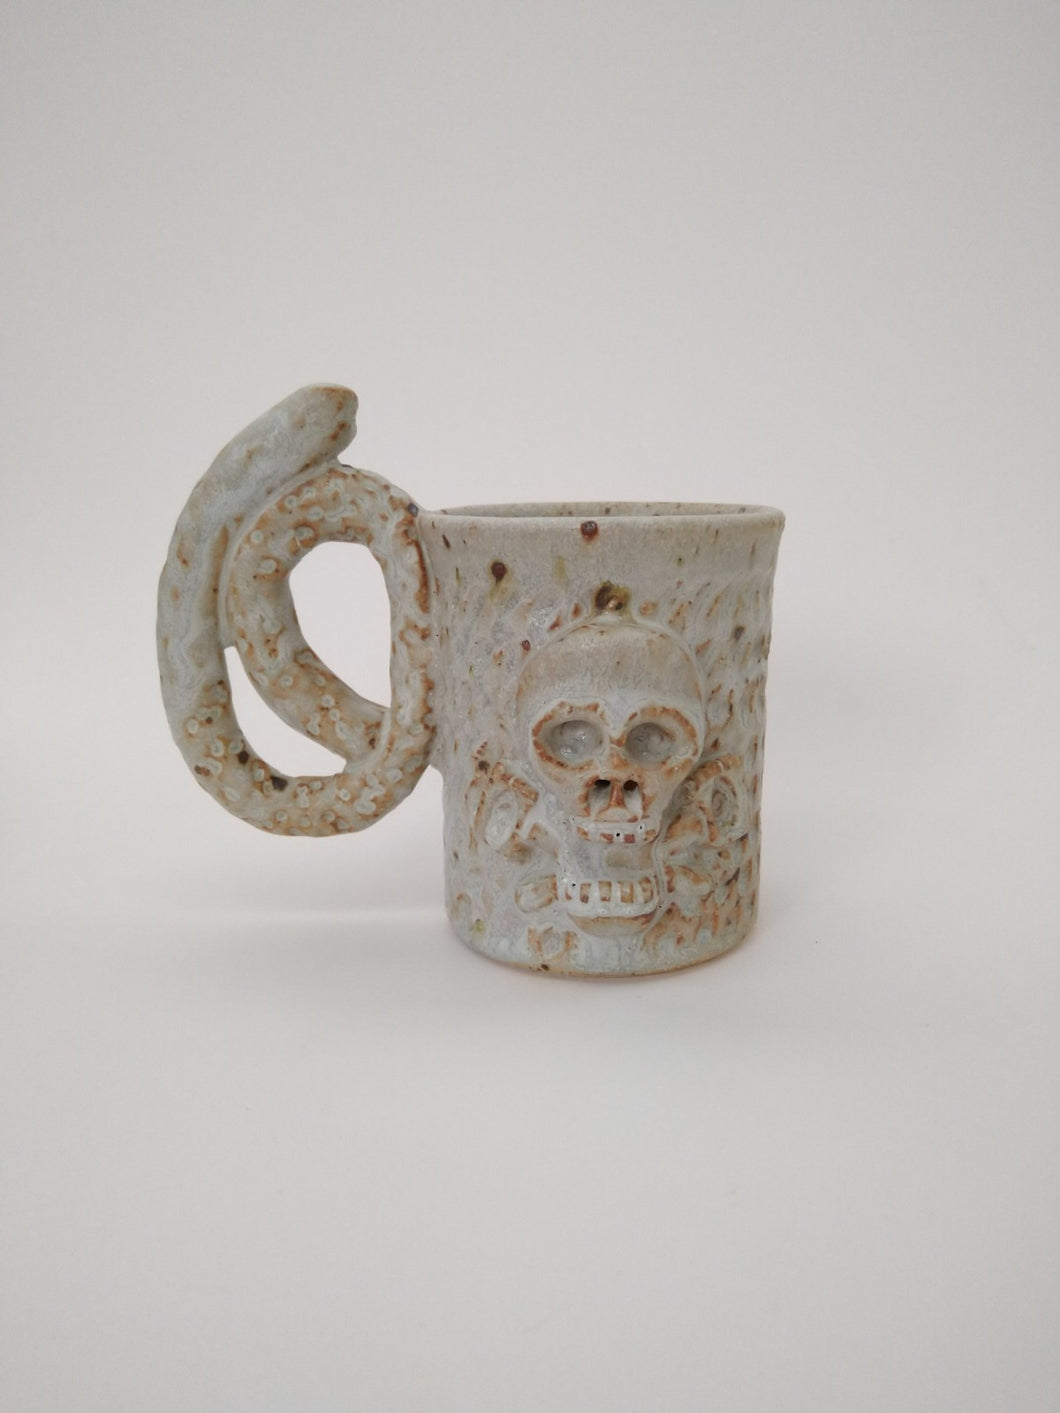 Pretzel Colon Skull Mug with Ivory Glaze